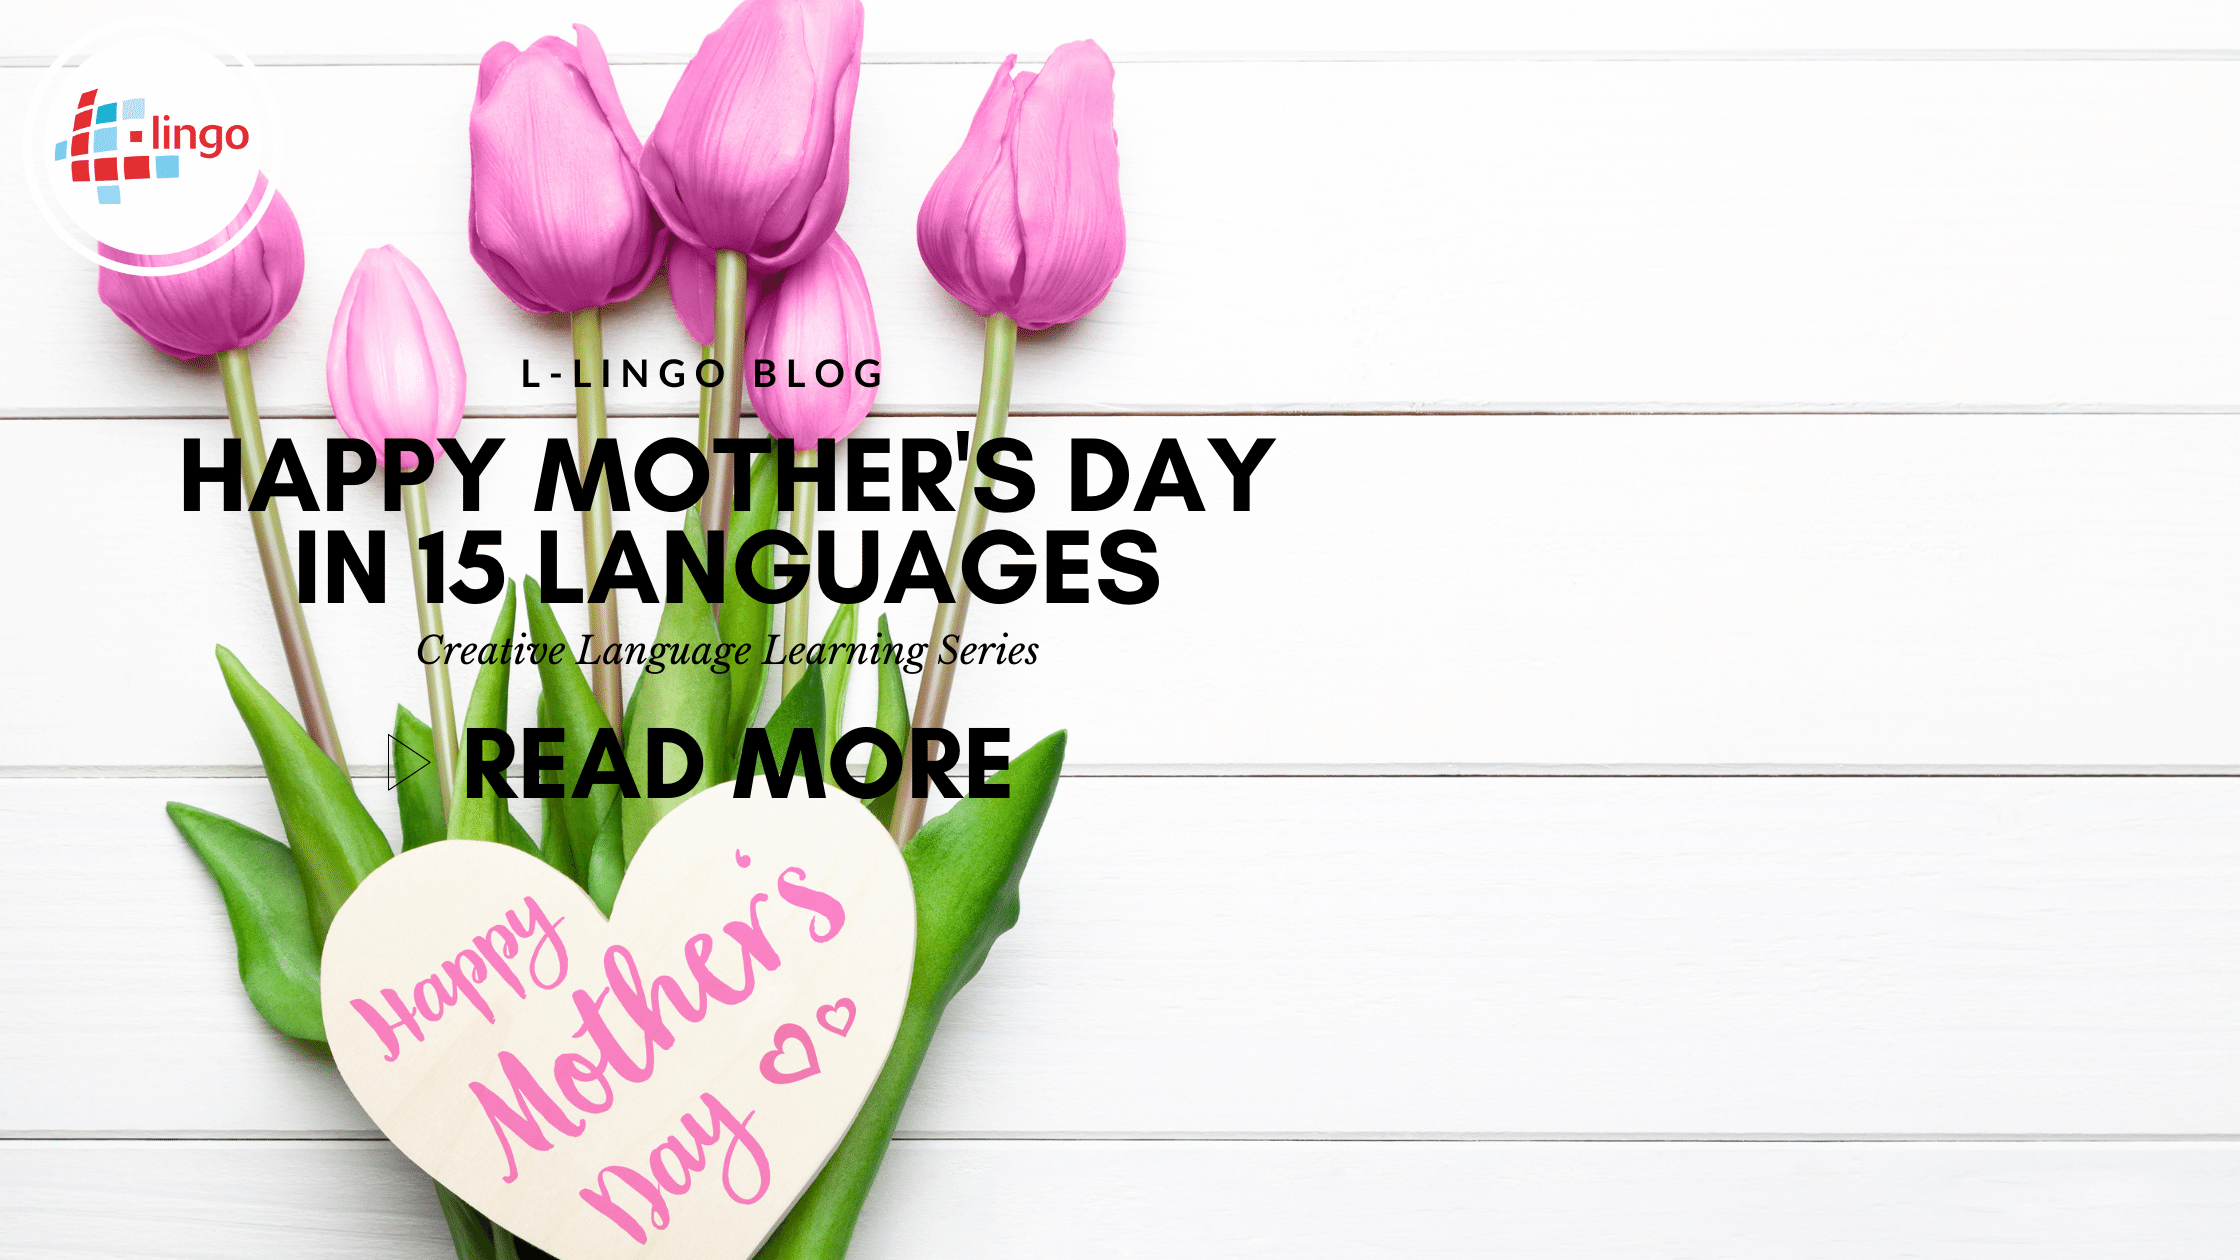 Happy Mother's Day In 15 Languages